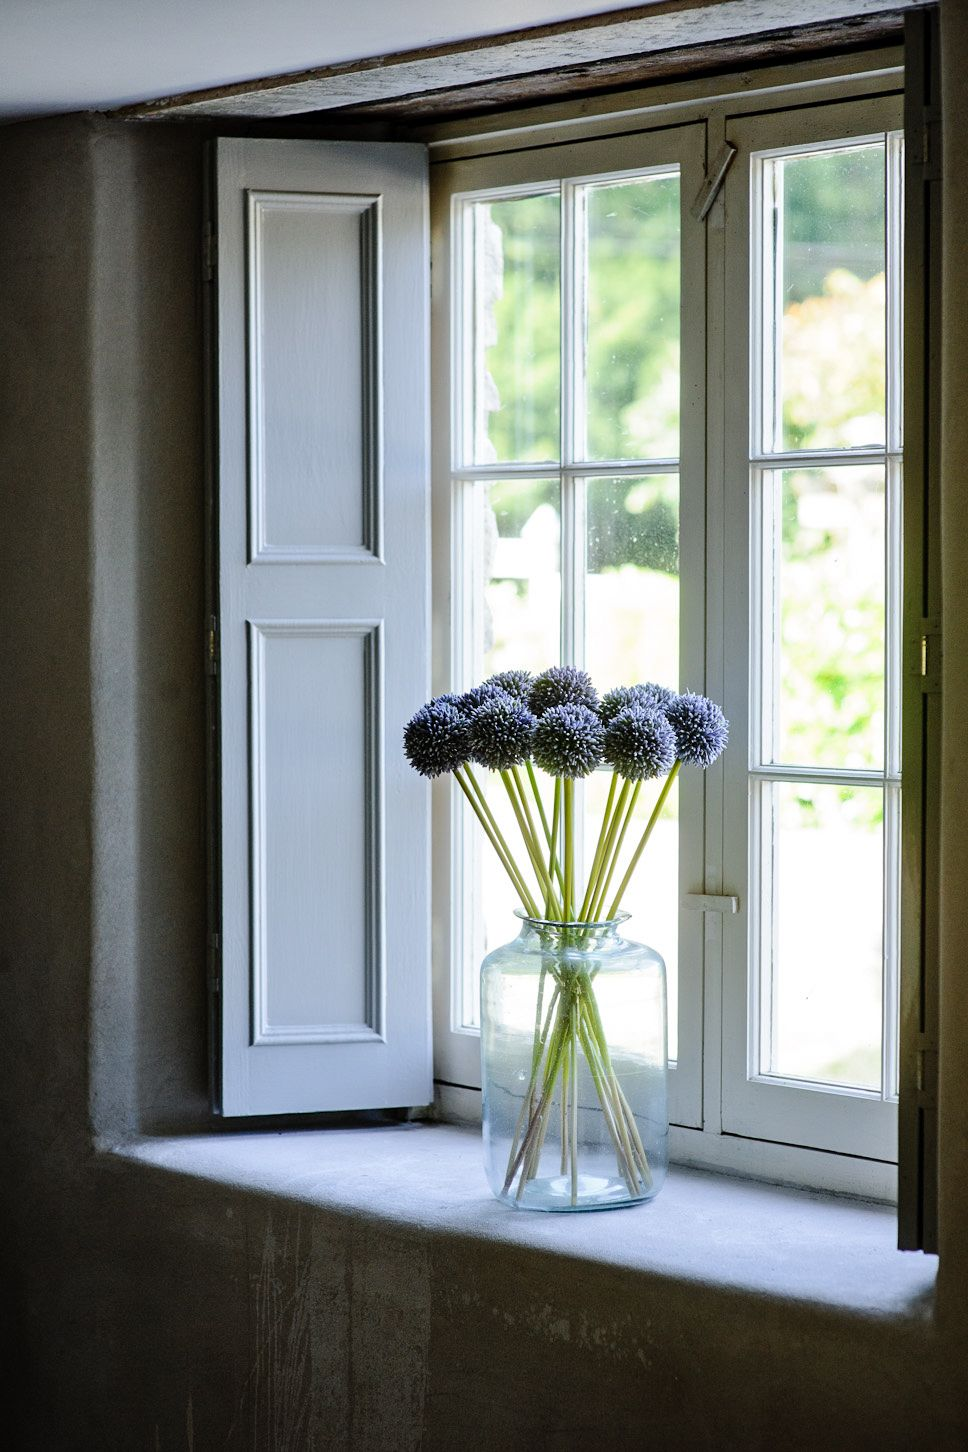 Large Cottage Window With Pale Wooden Shutters.To Top It Of A Clear Large  Vase With Dark Alliums Sits On The Sill.Loove!